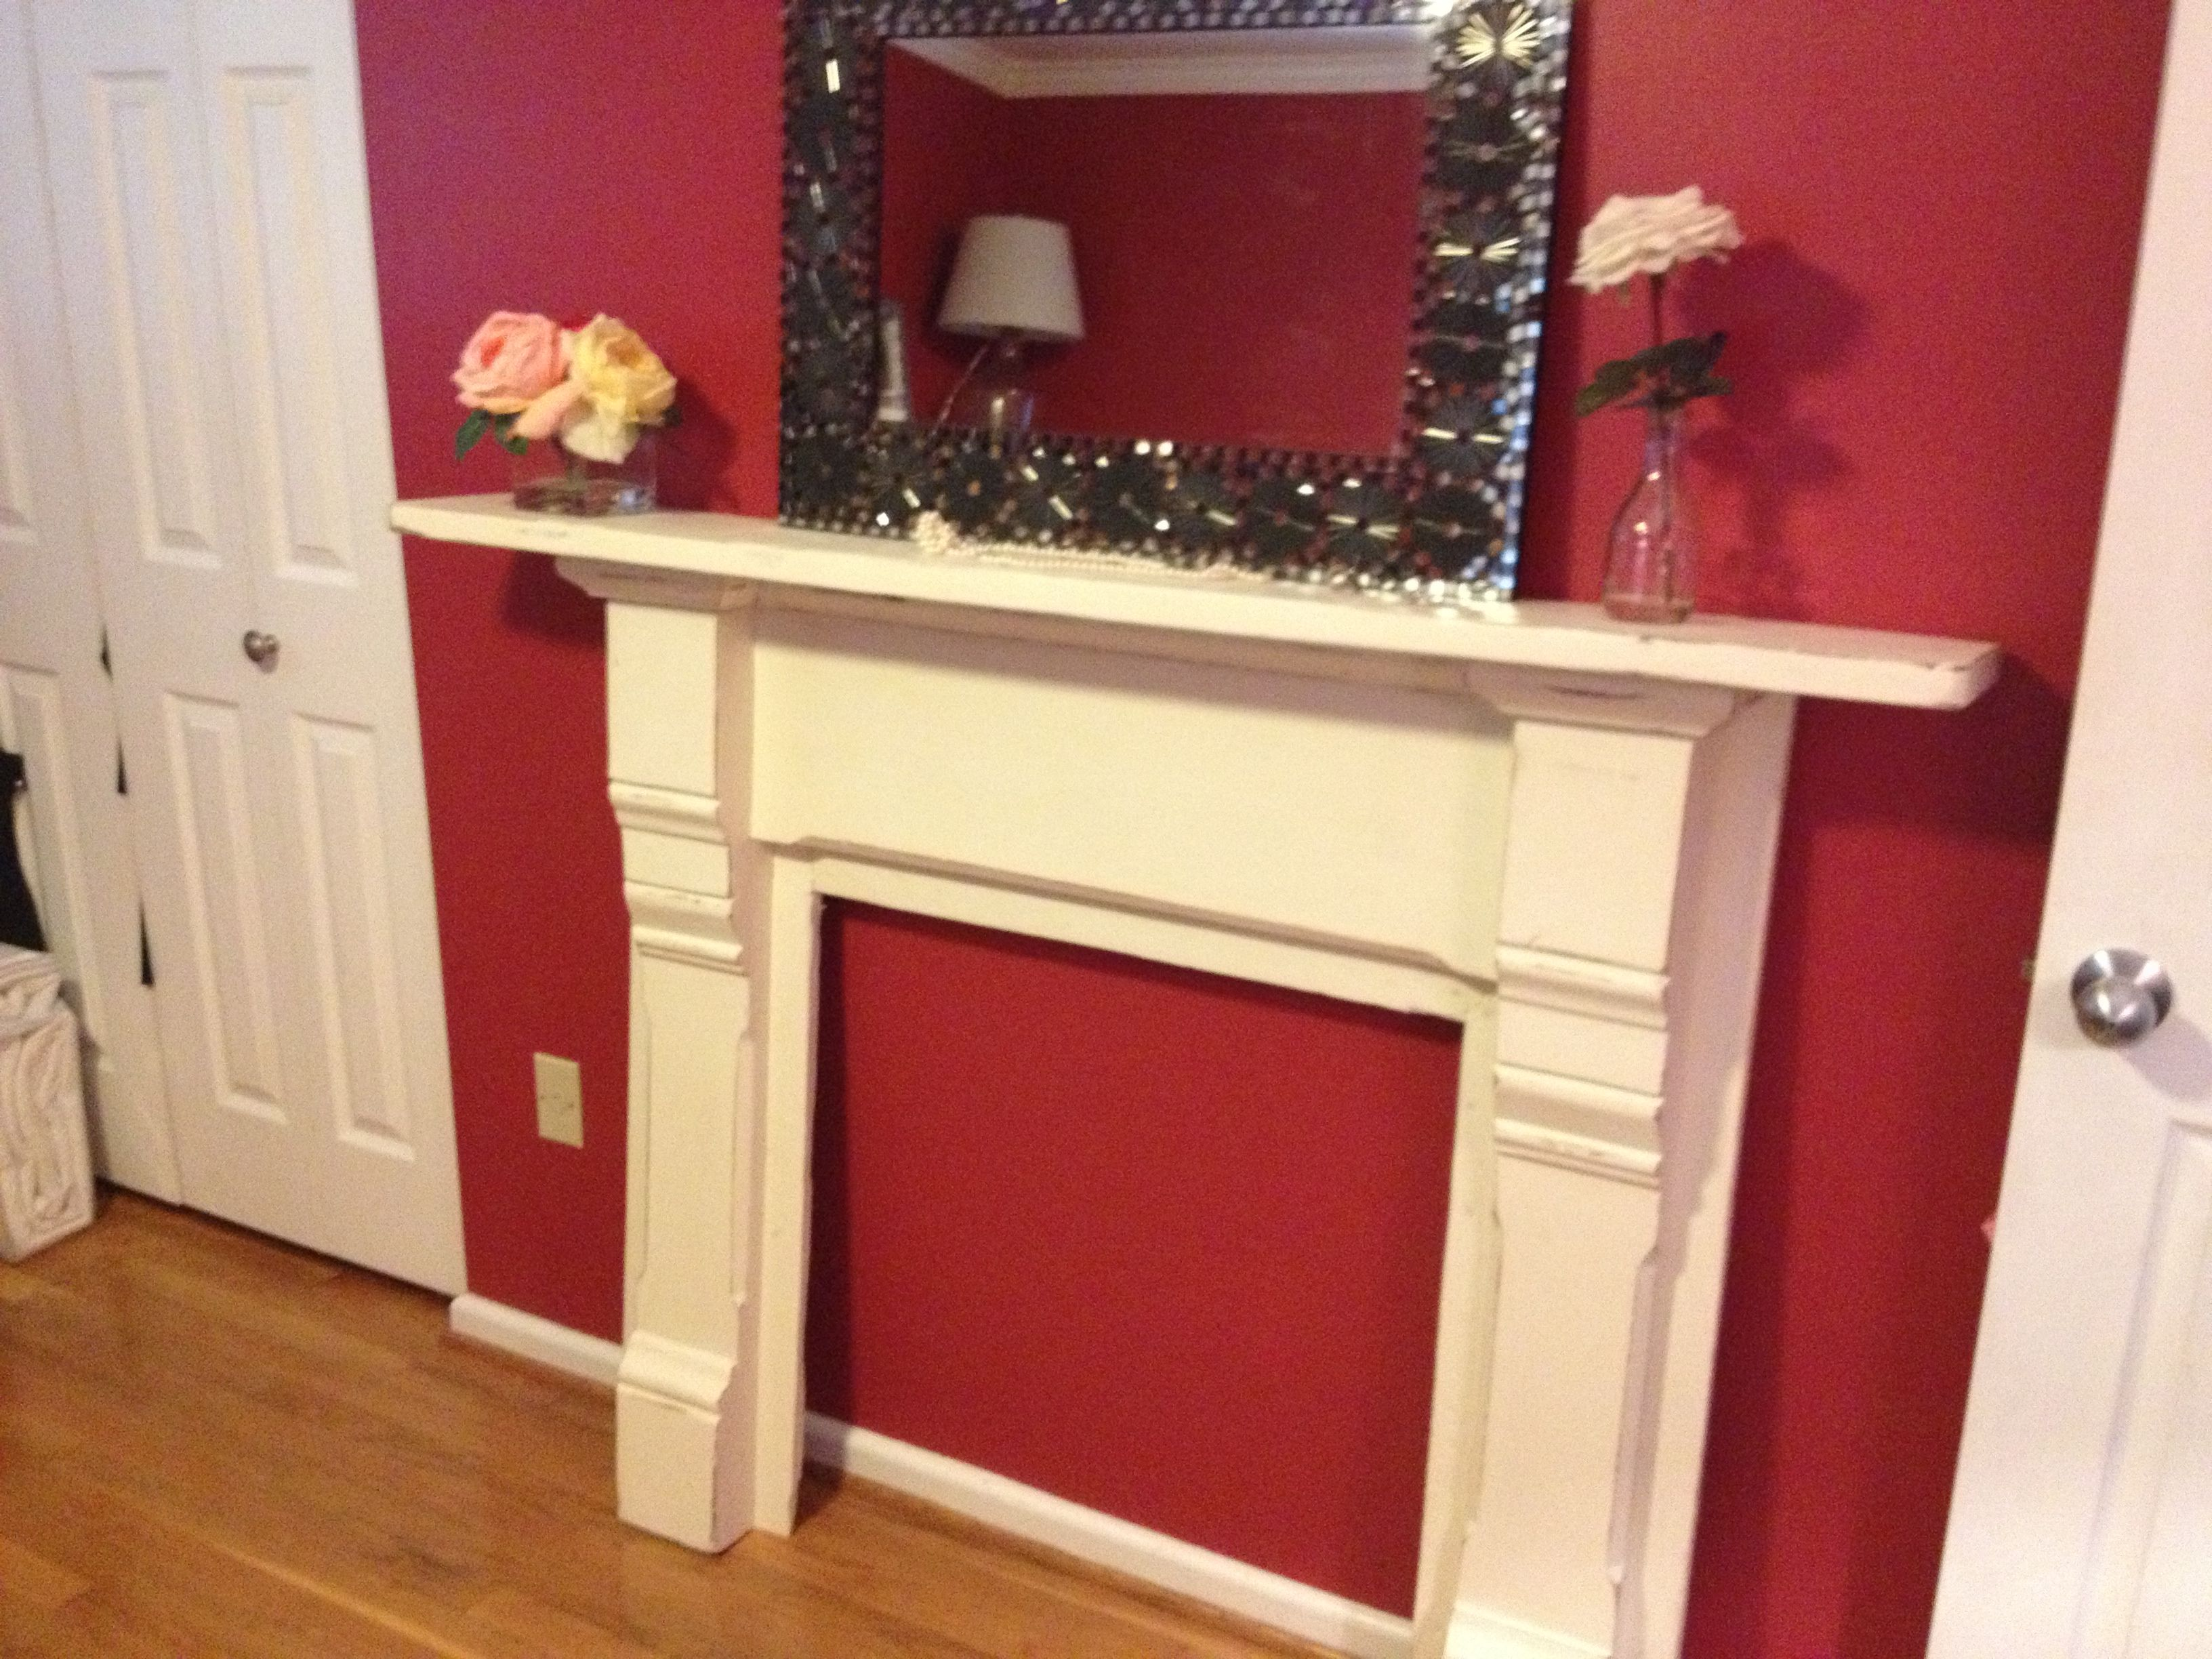 Hearth Repurposed Mantle From A Second Hand Store Diy Finding The Chic In Shabby Faux Fireplace Fireplace